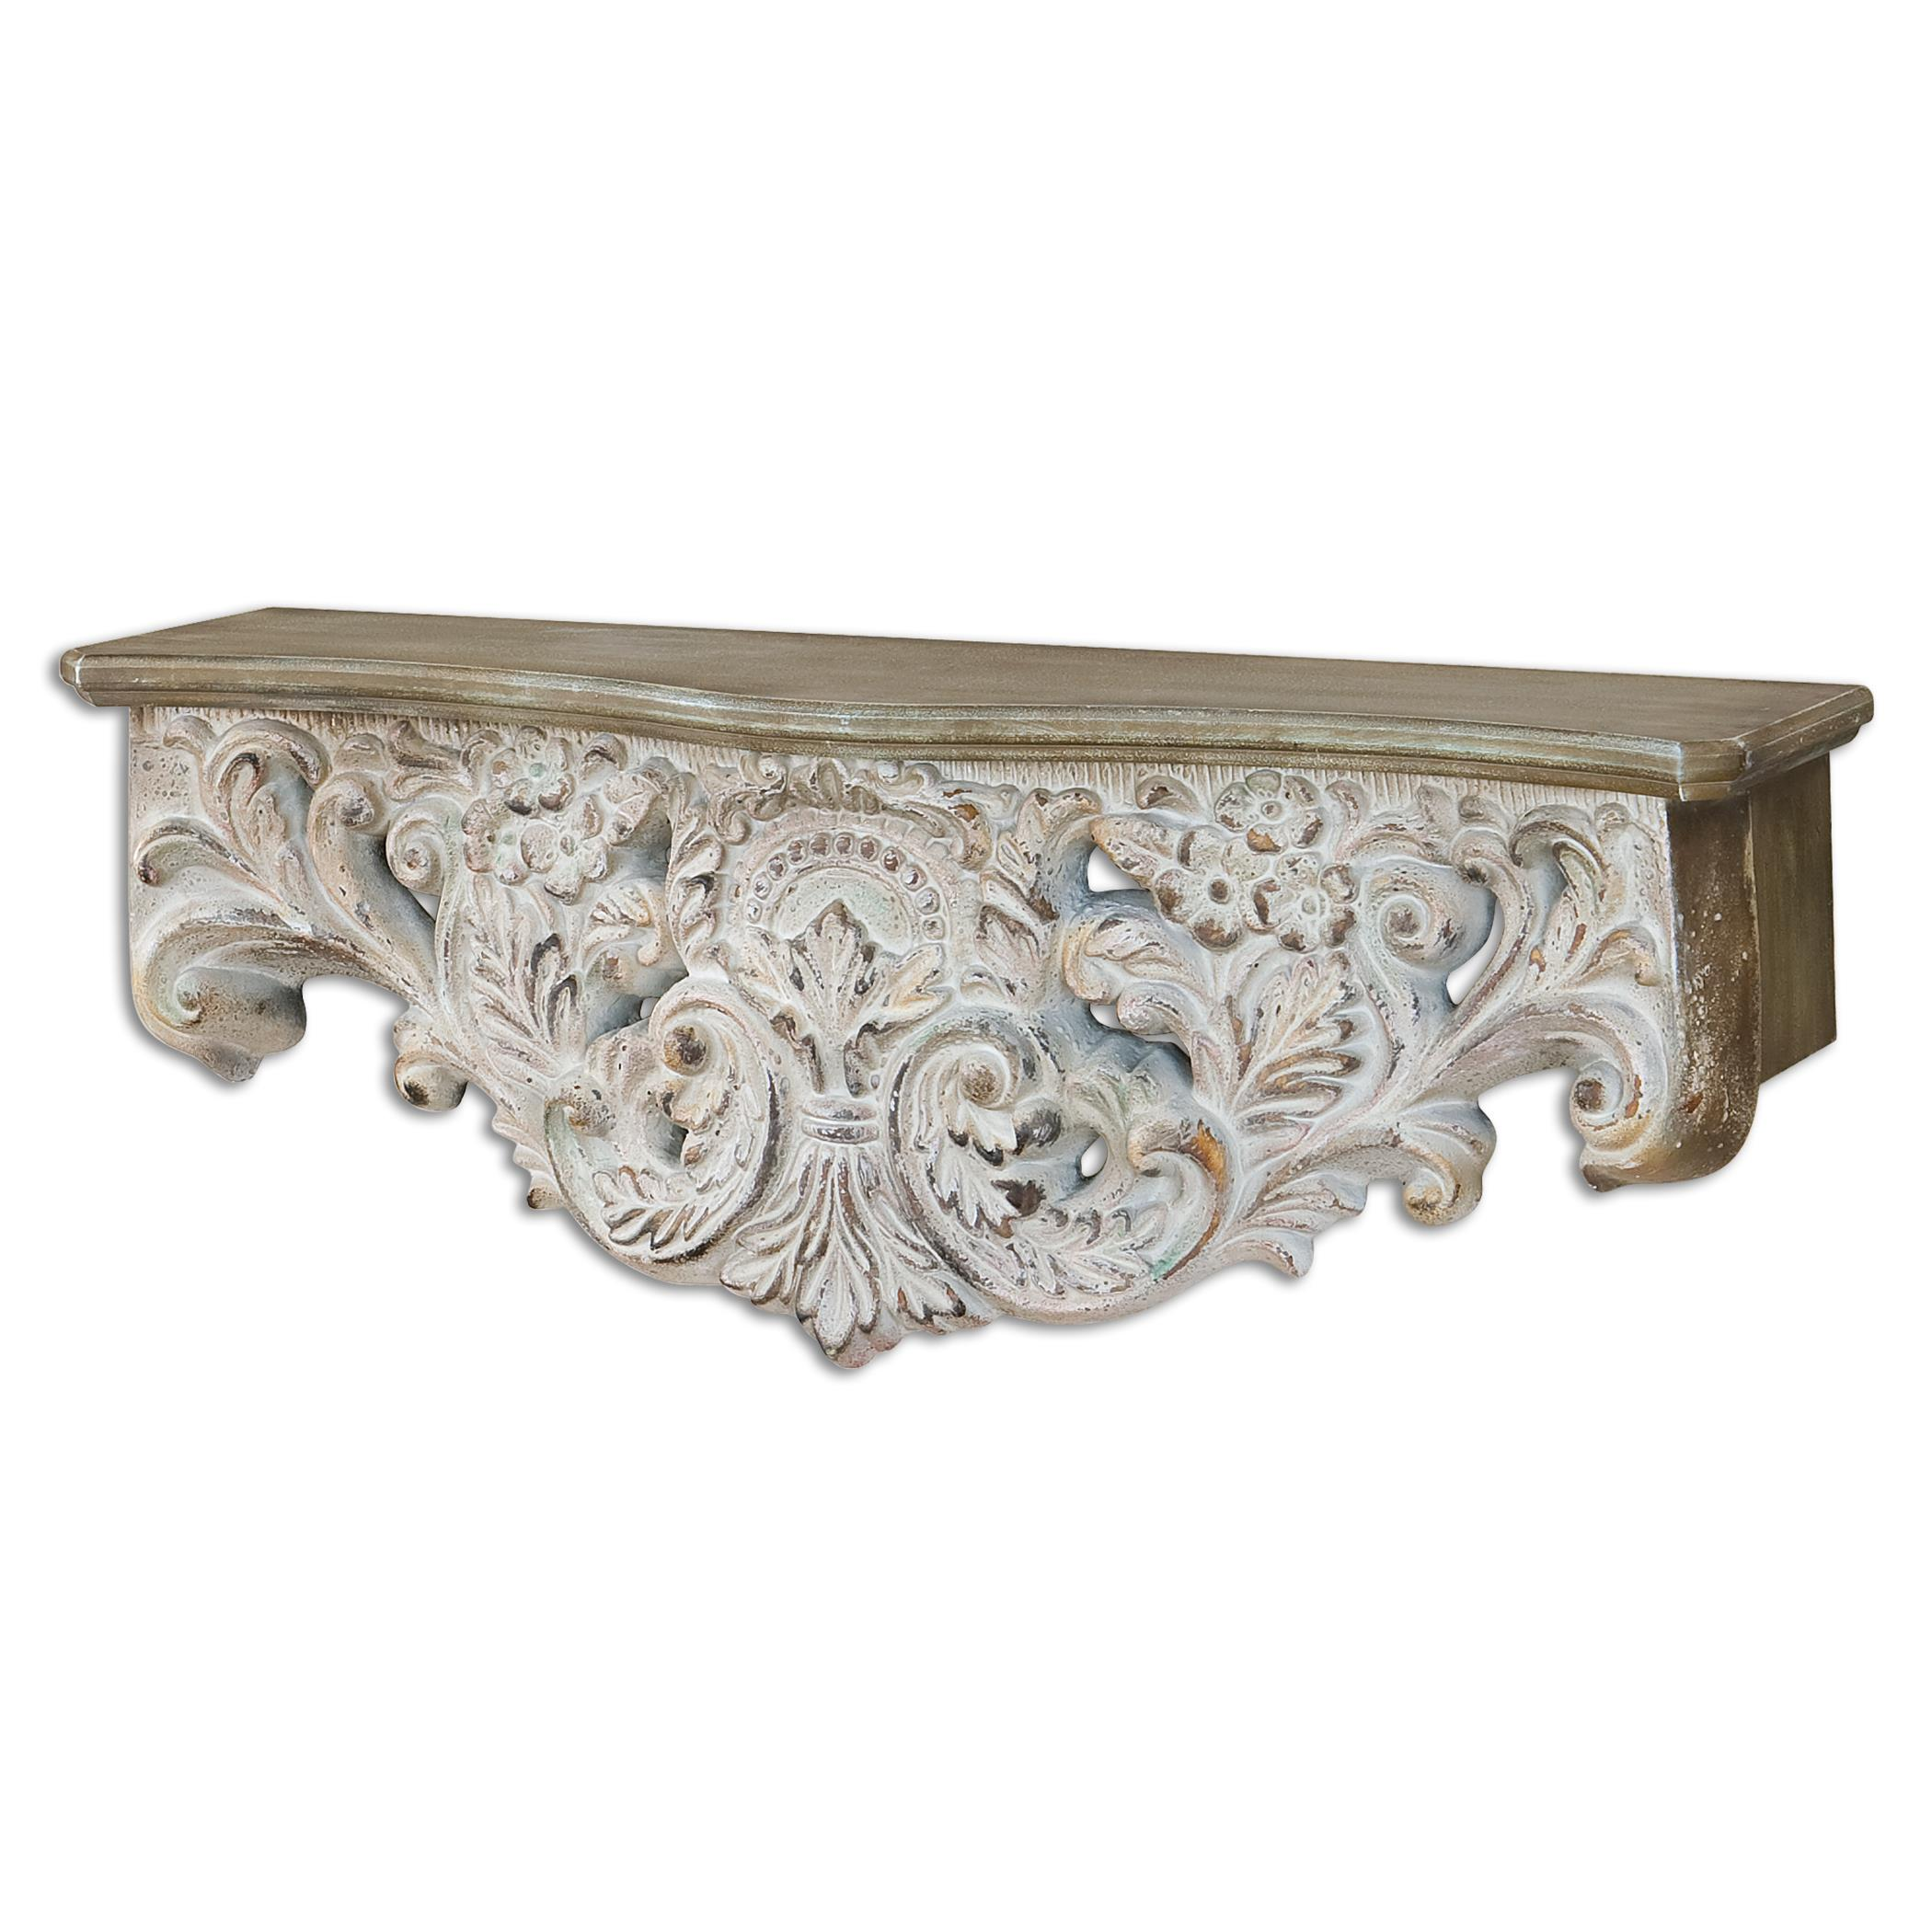 Uttermost Alternative Wall Decor Arpaise Shelf - Item Number: 13928